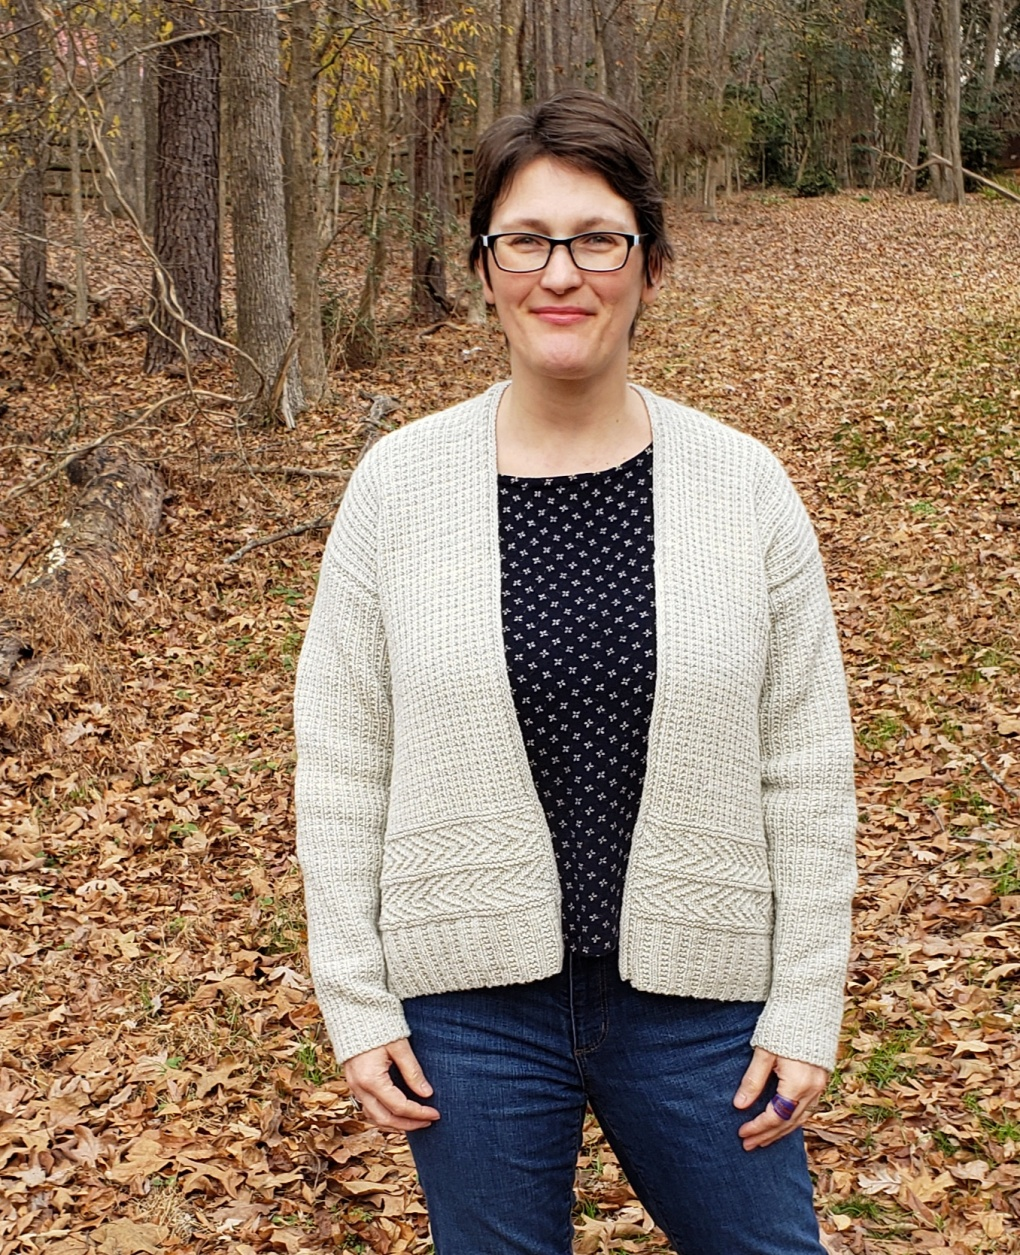 Middle-aged woman modeling a relaxed fit open cardigan